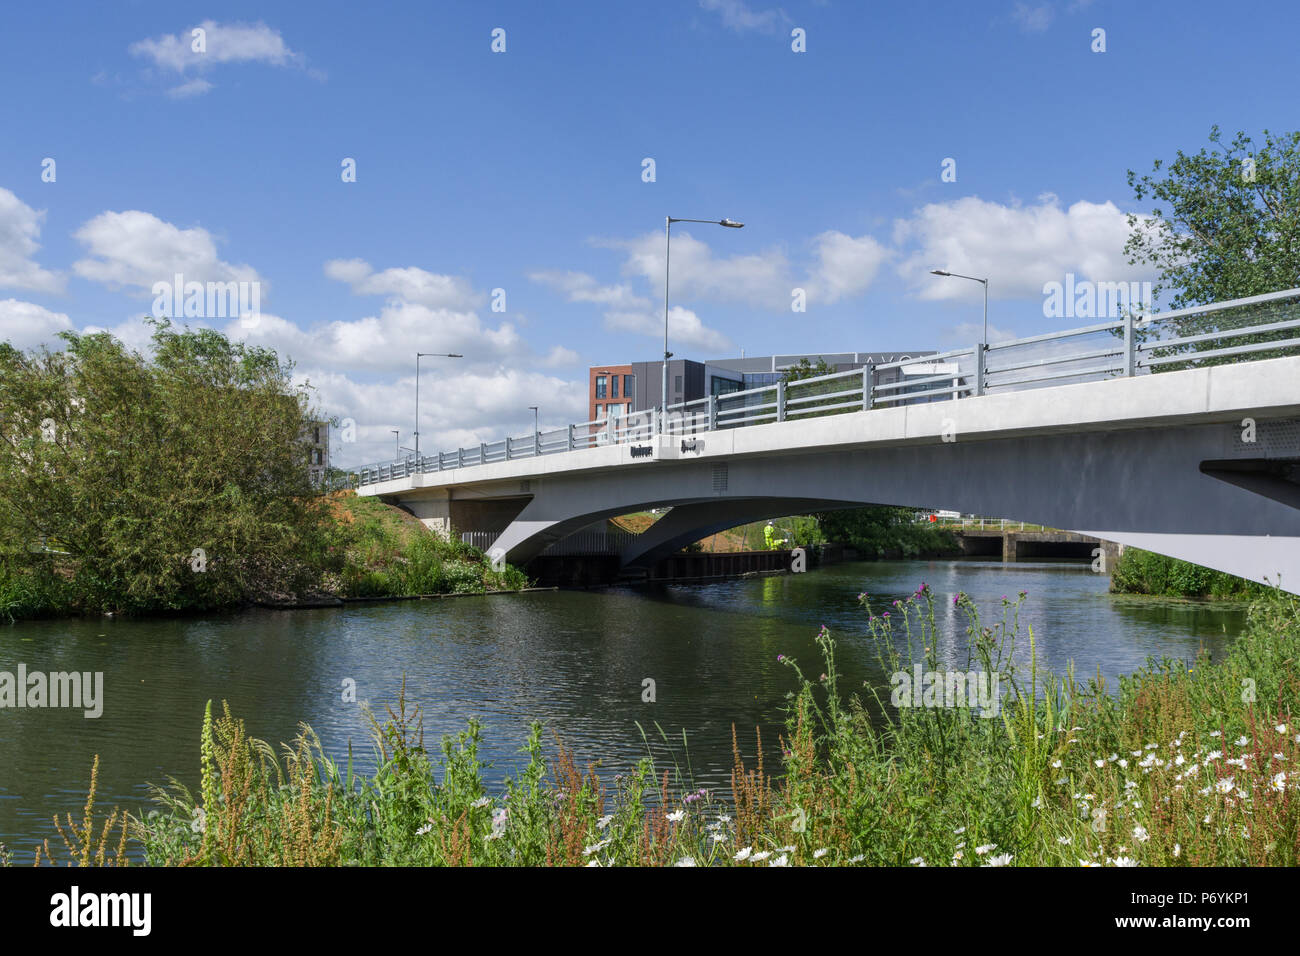 University Bridge, a road bridge crossing the River Nene and leading to the new Waterside Campus due to open in September, 2018; Northampton, UK - Stock Image